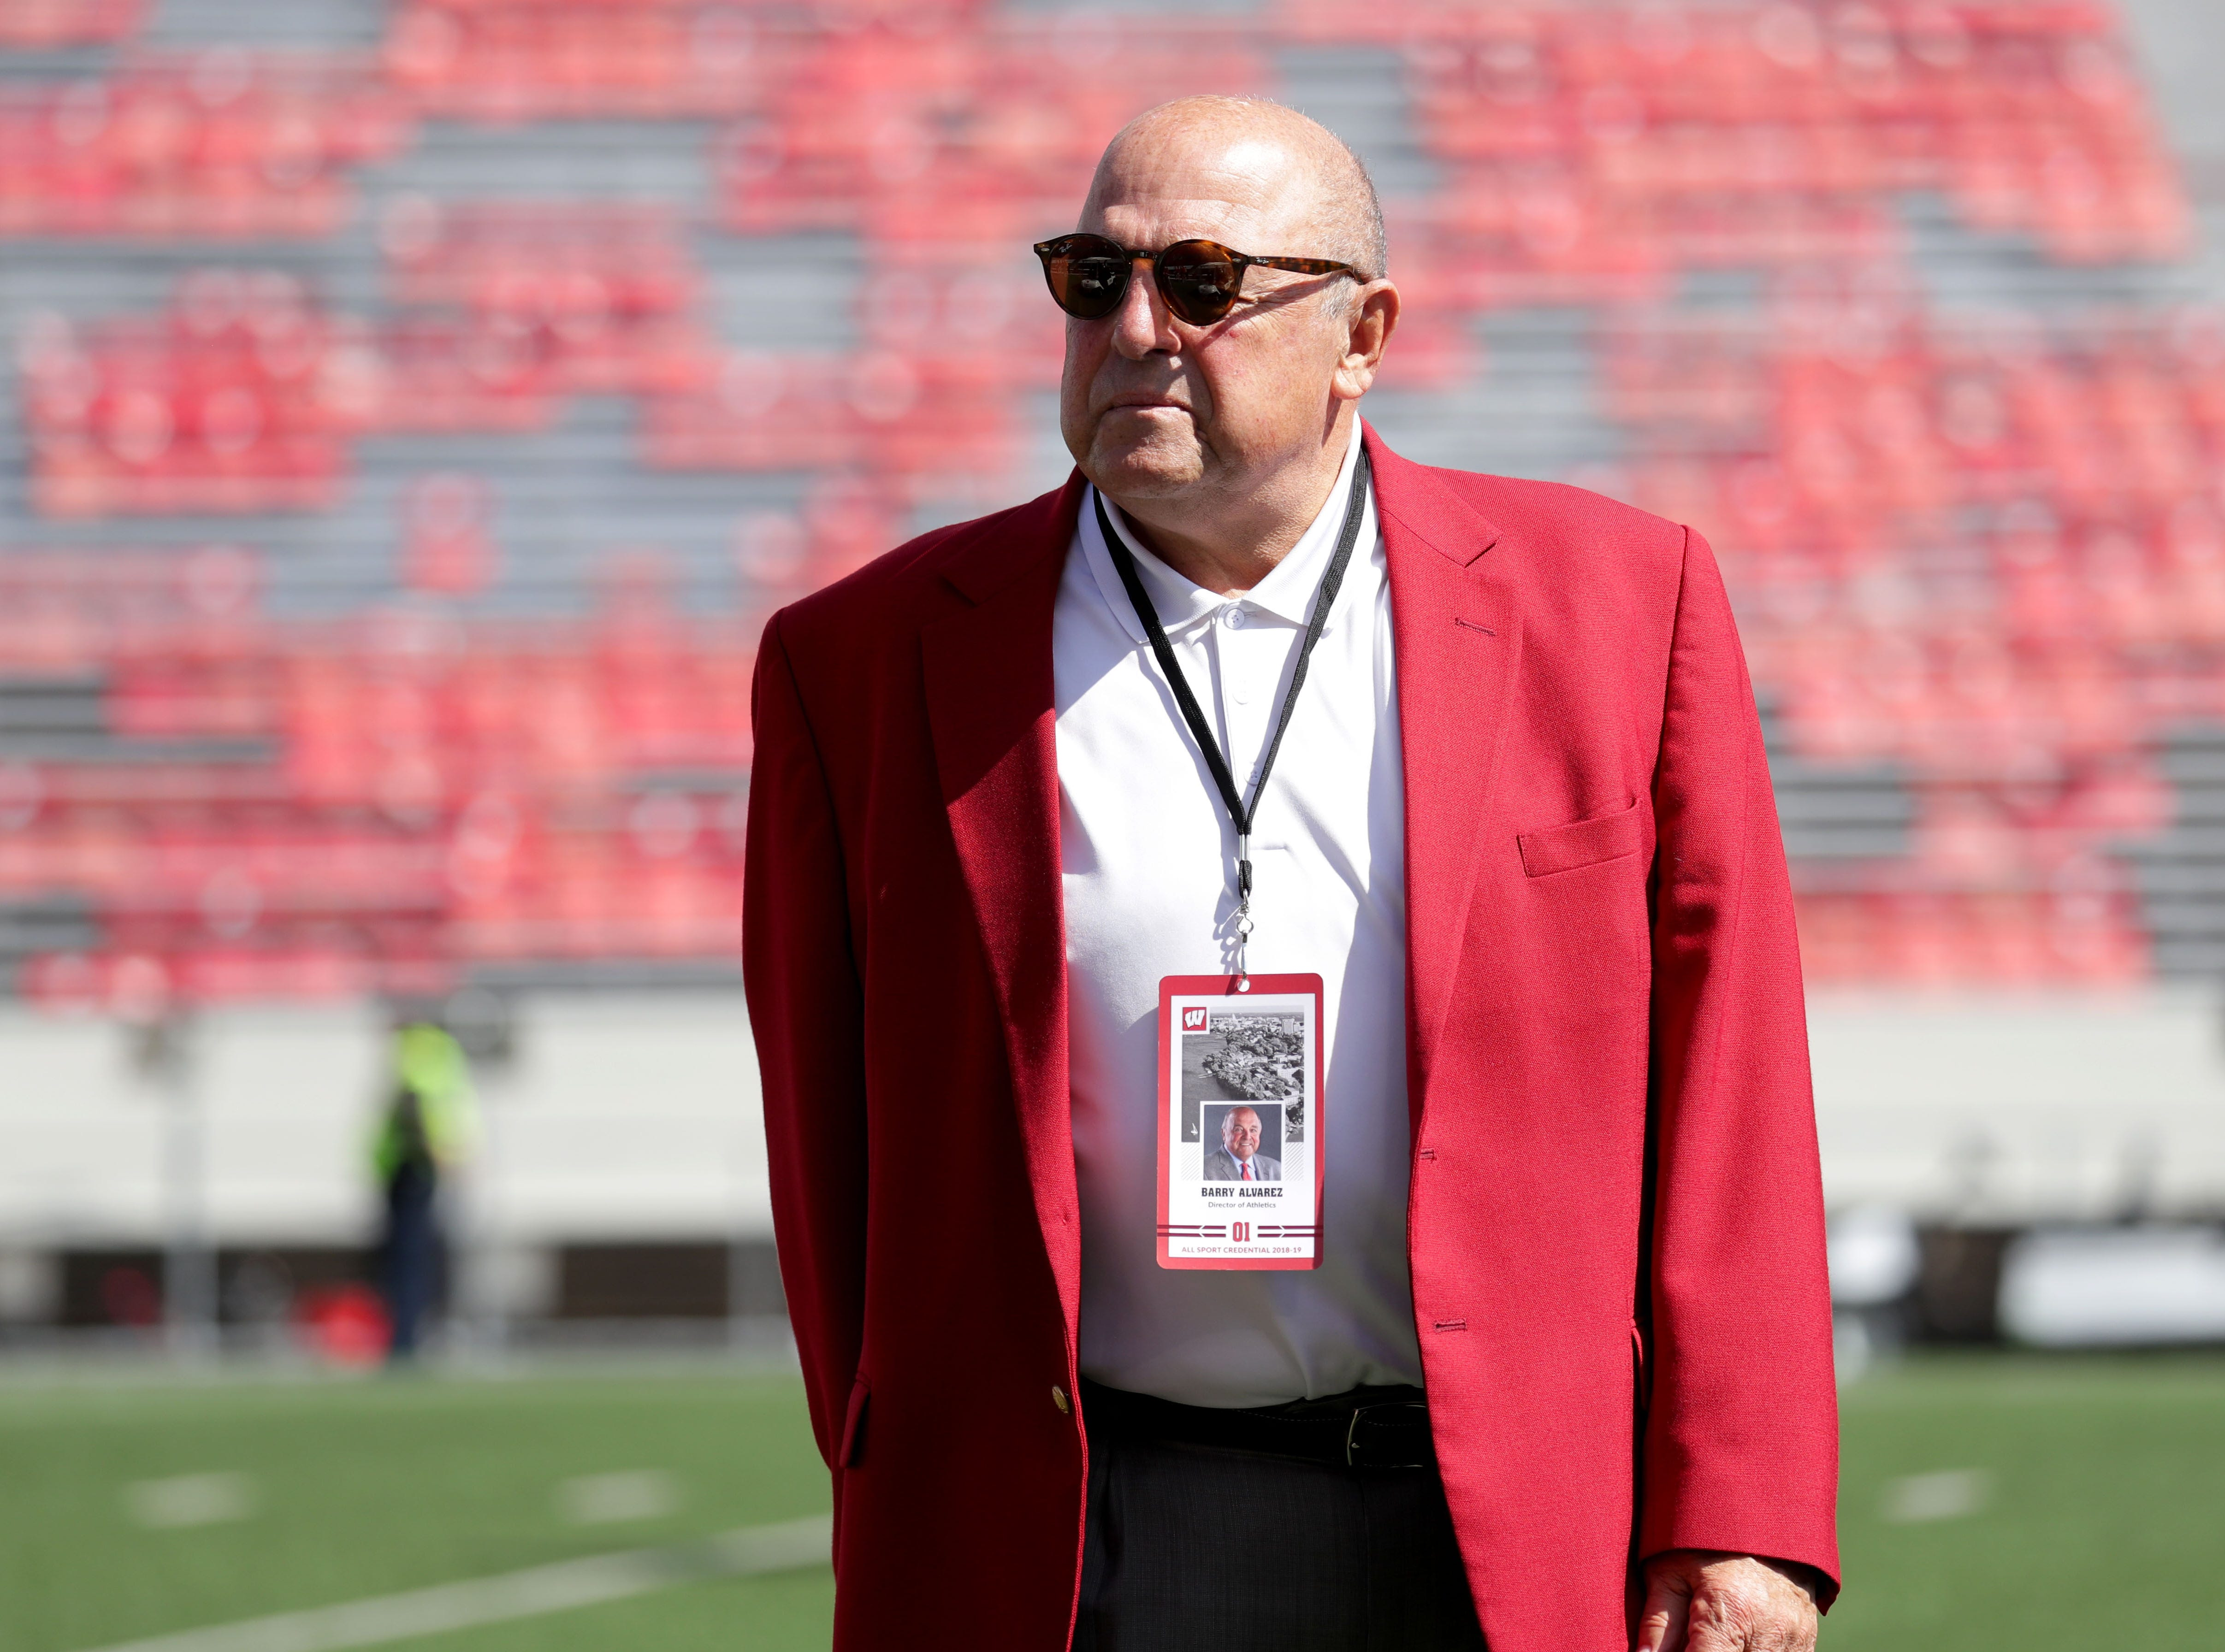 UW Athletic Director Barry Alvarez walks on the field before Wisconsin's game against BYU on Saturday at Camp Randall Stadium.